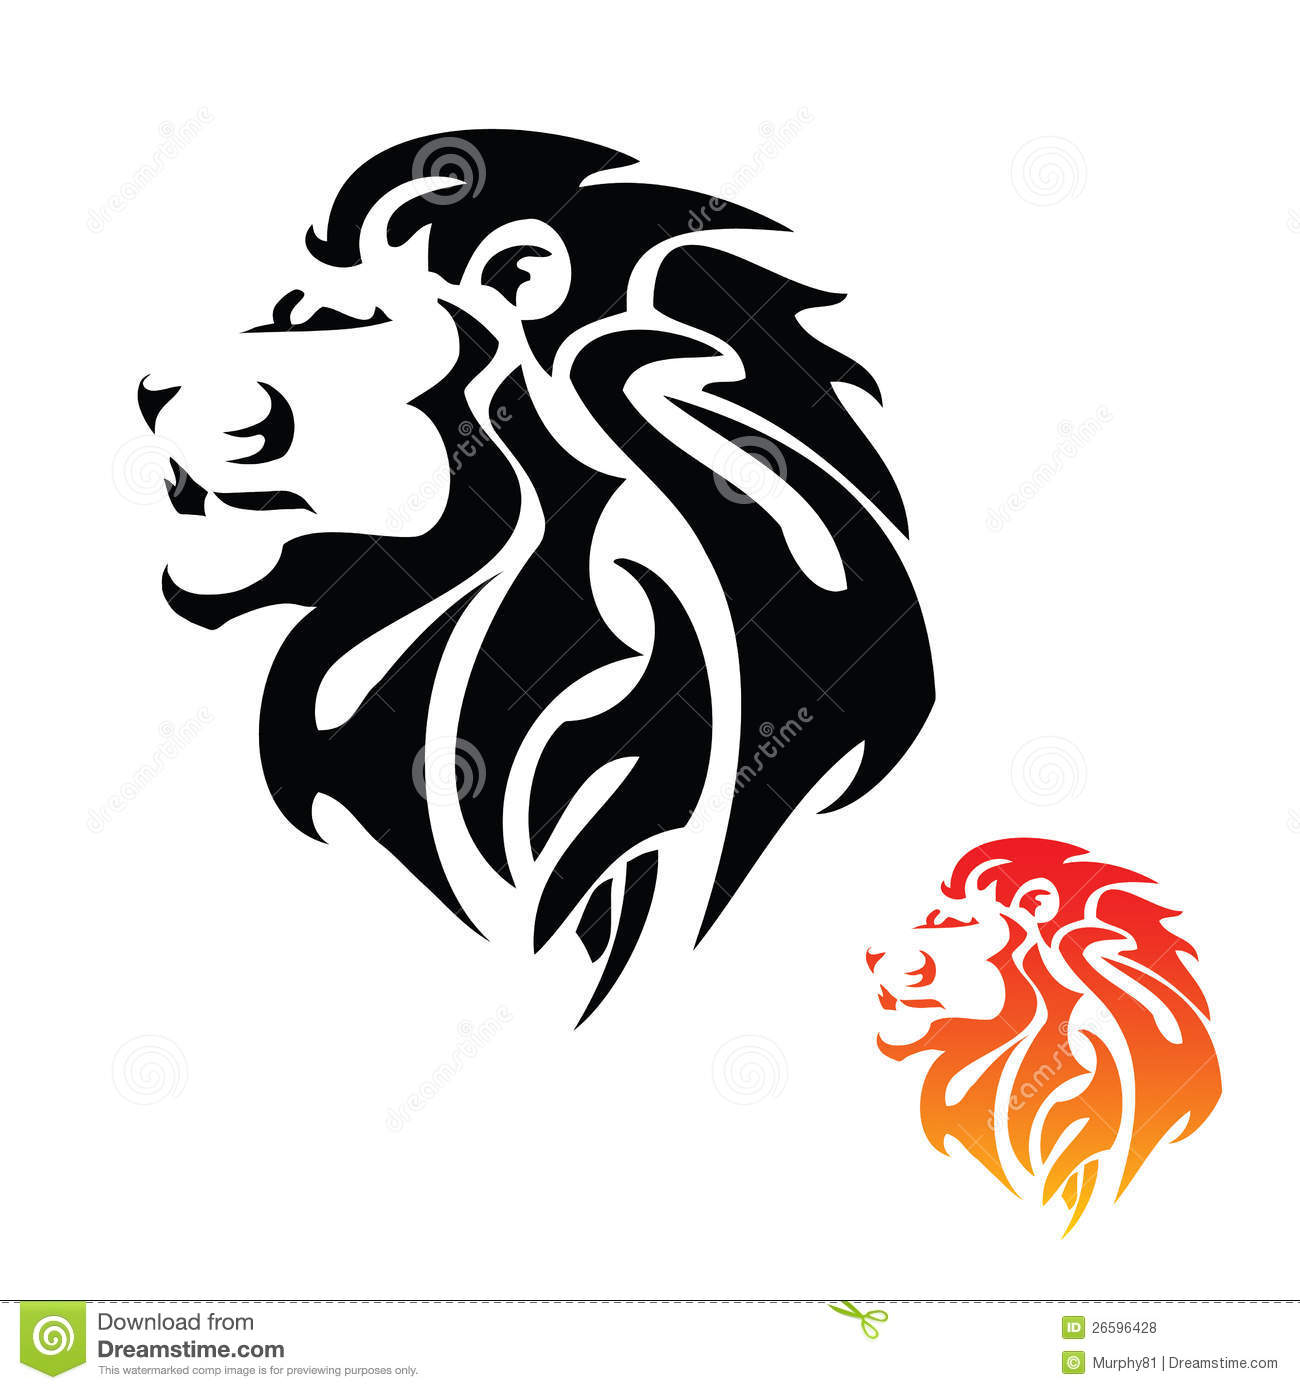 Lion head tribal tattoo royalty free stock photos image 26596428